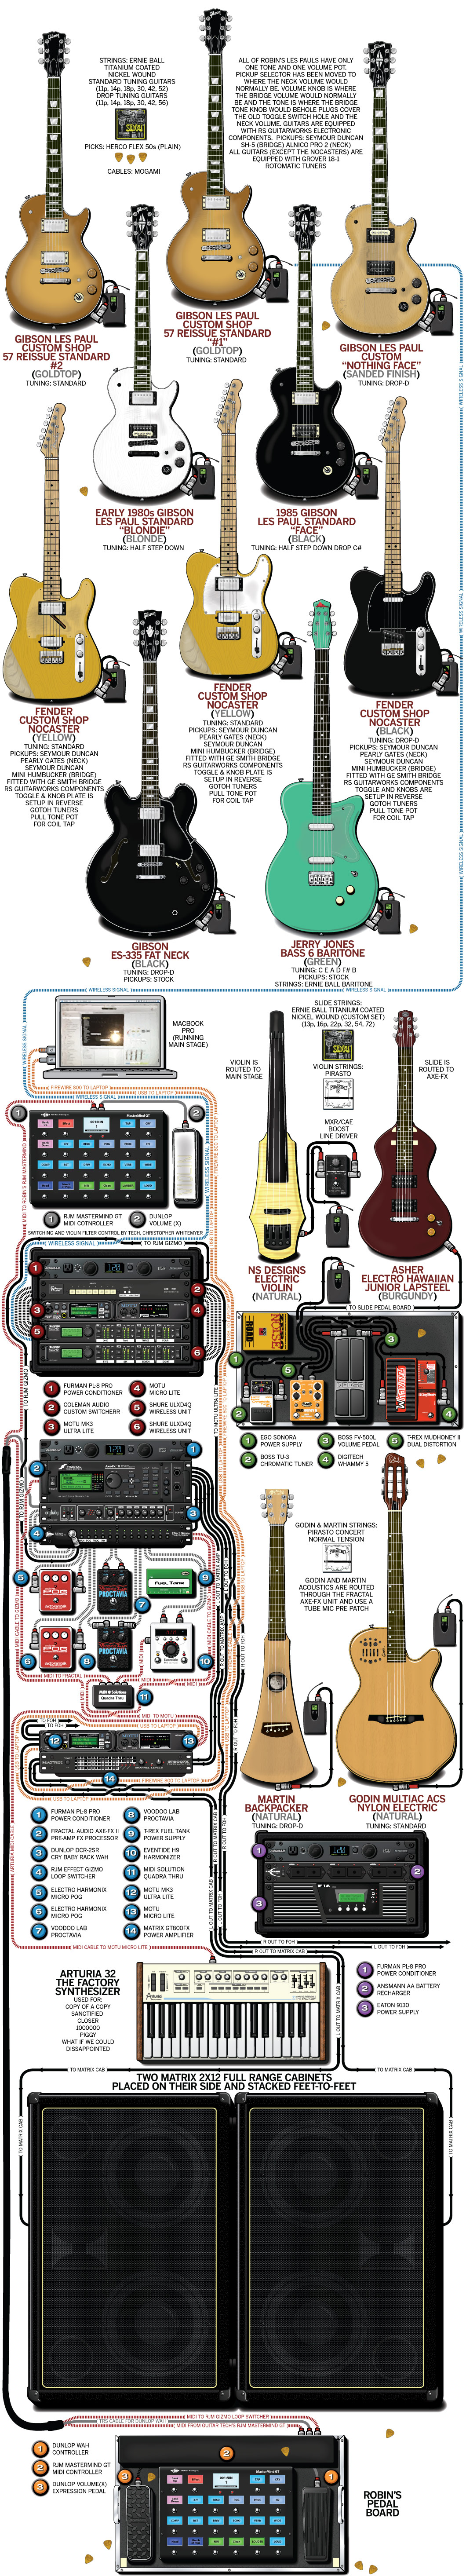 Robin Finck Guitar Gear & Rig – Nine Inch Nails – 2014